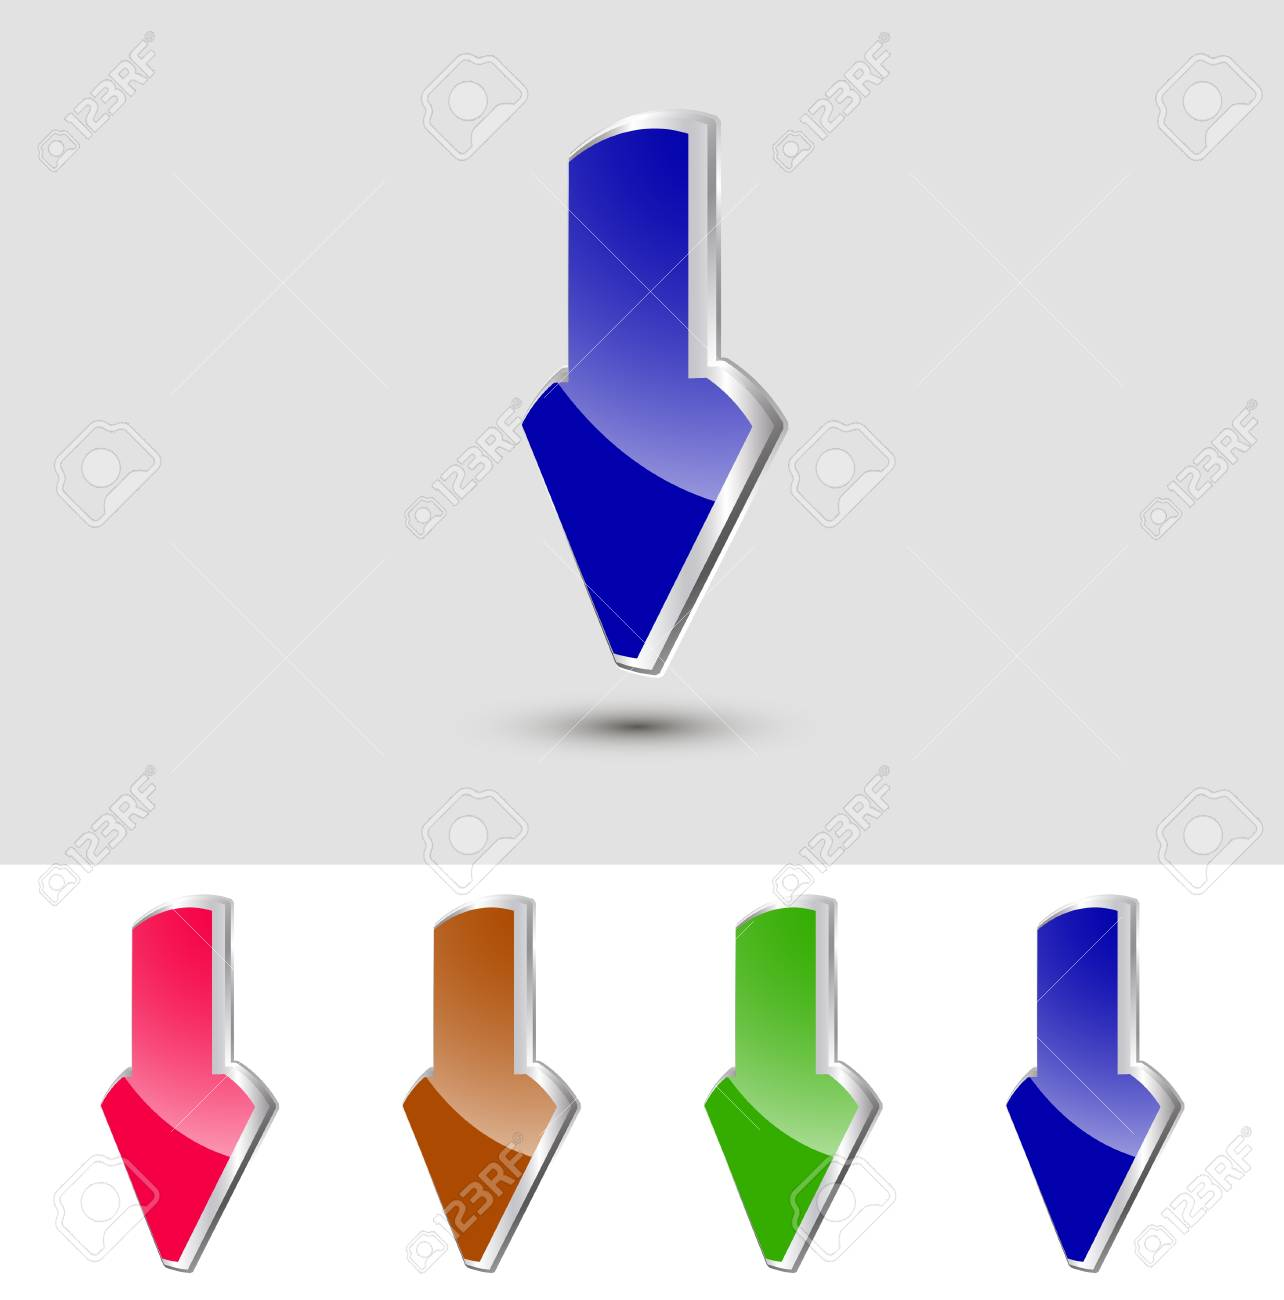 Vector metallic pointer, can to edit and change. Stock Vector - 12084477